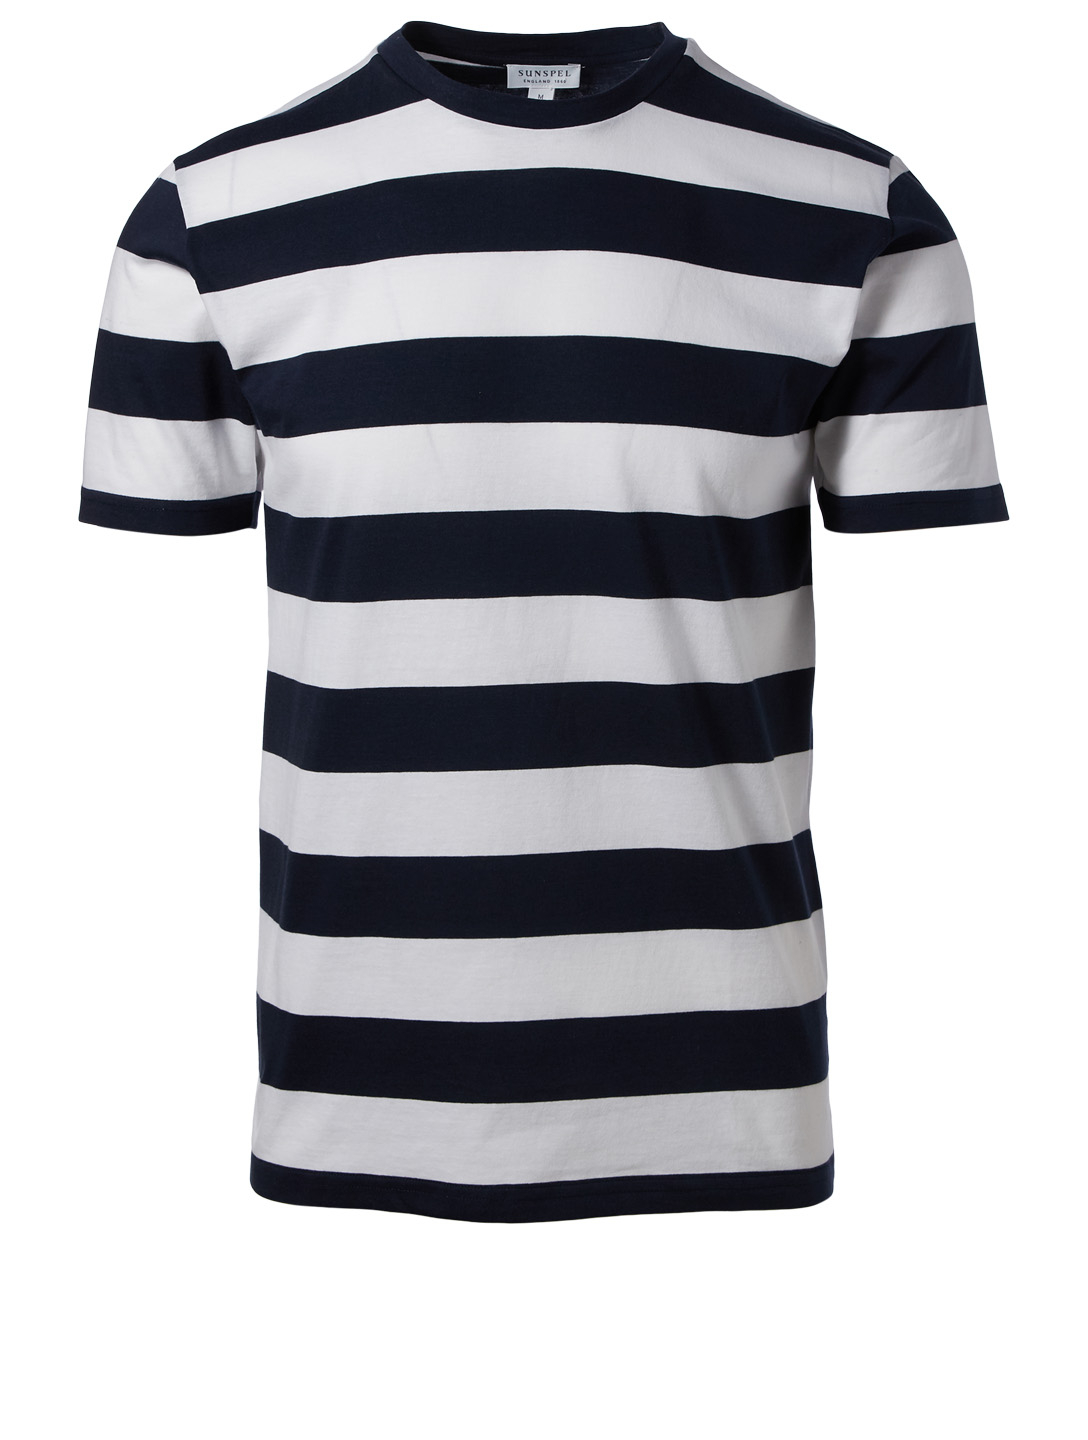 SUNSPEL Organic Cotton Striped T-Shirt Men's Multi